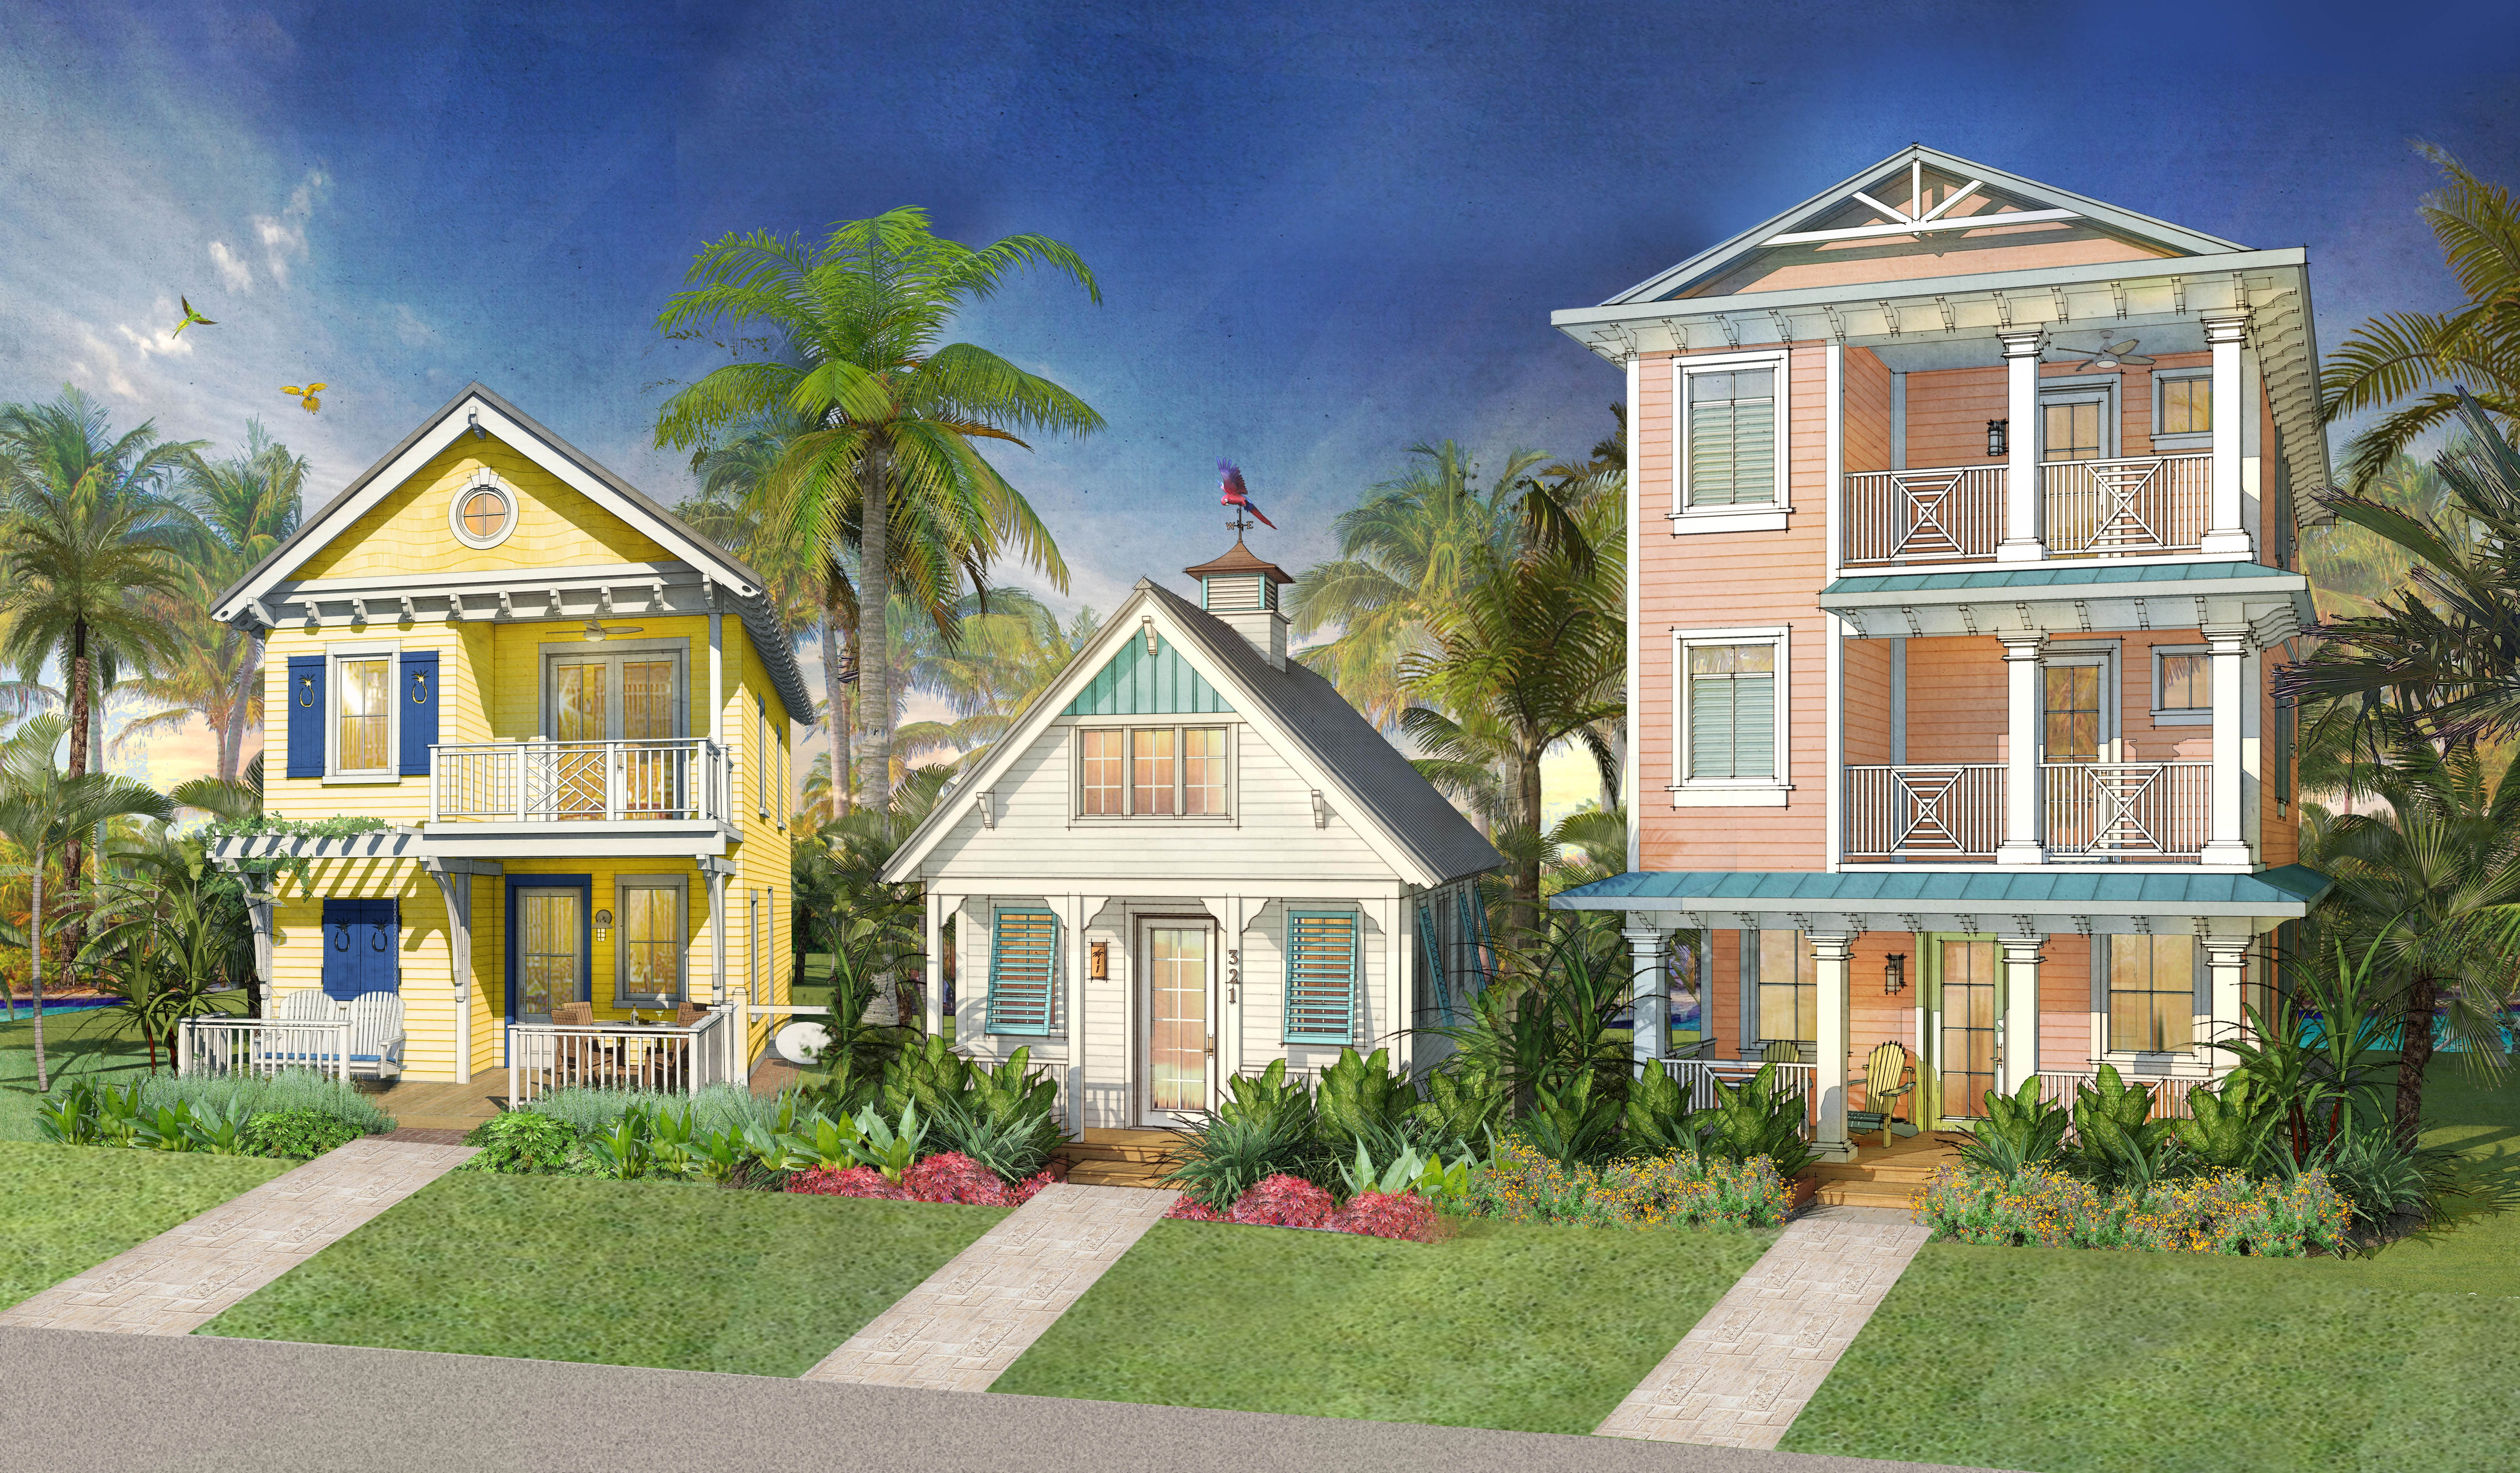 Margaritaville just confirmed it's building one of the most ... on plans for gates, plans for apartment complexes, plans for garages, plans for construction, plans for pool, plans for furniture,